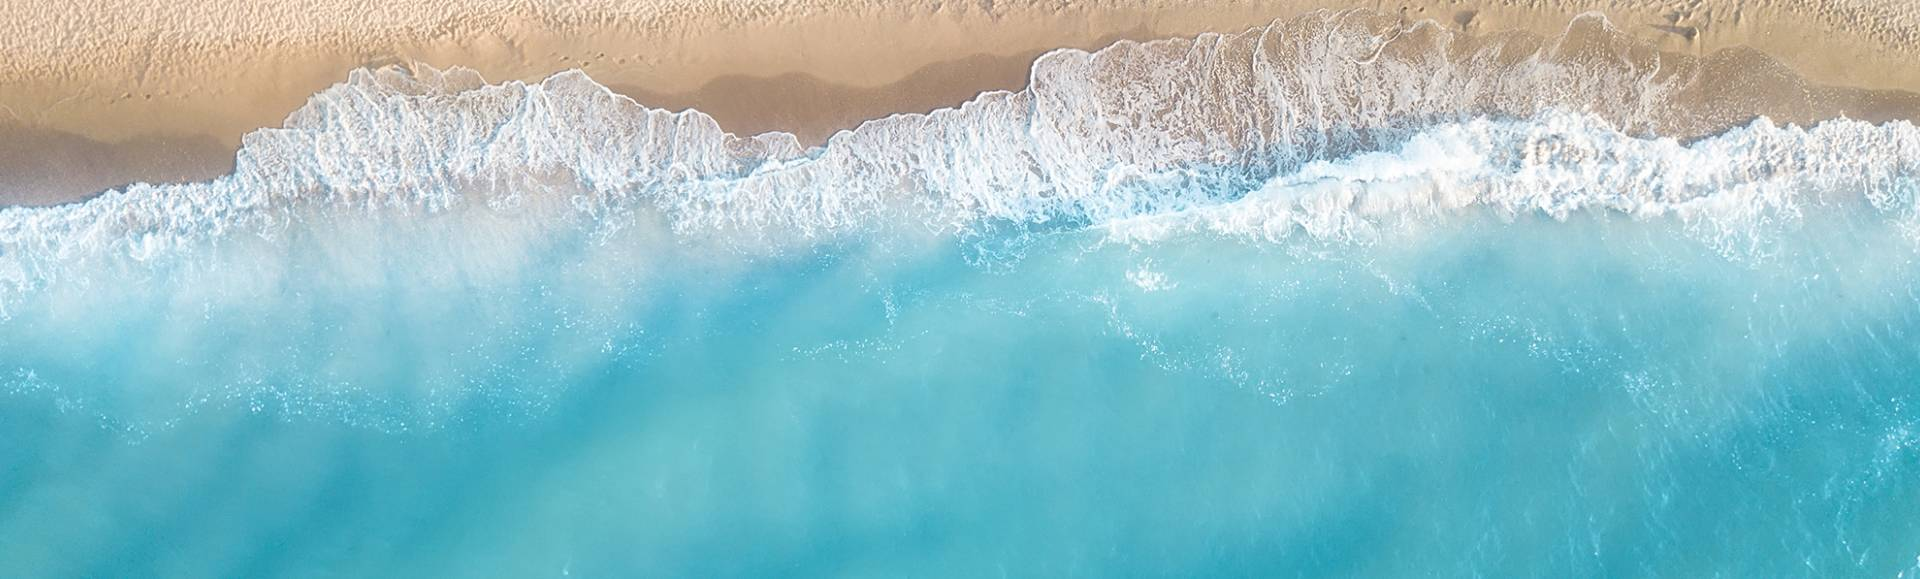 bandeau_mer_sable_turquoise